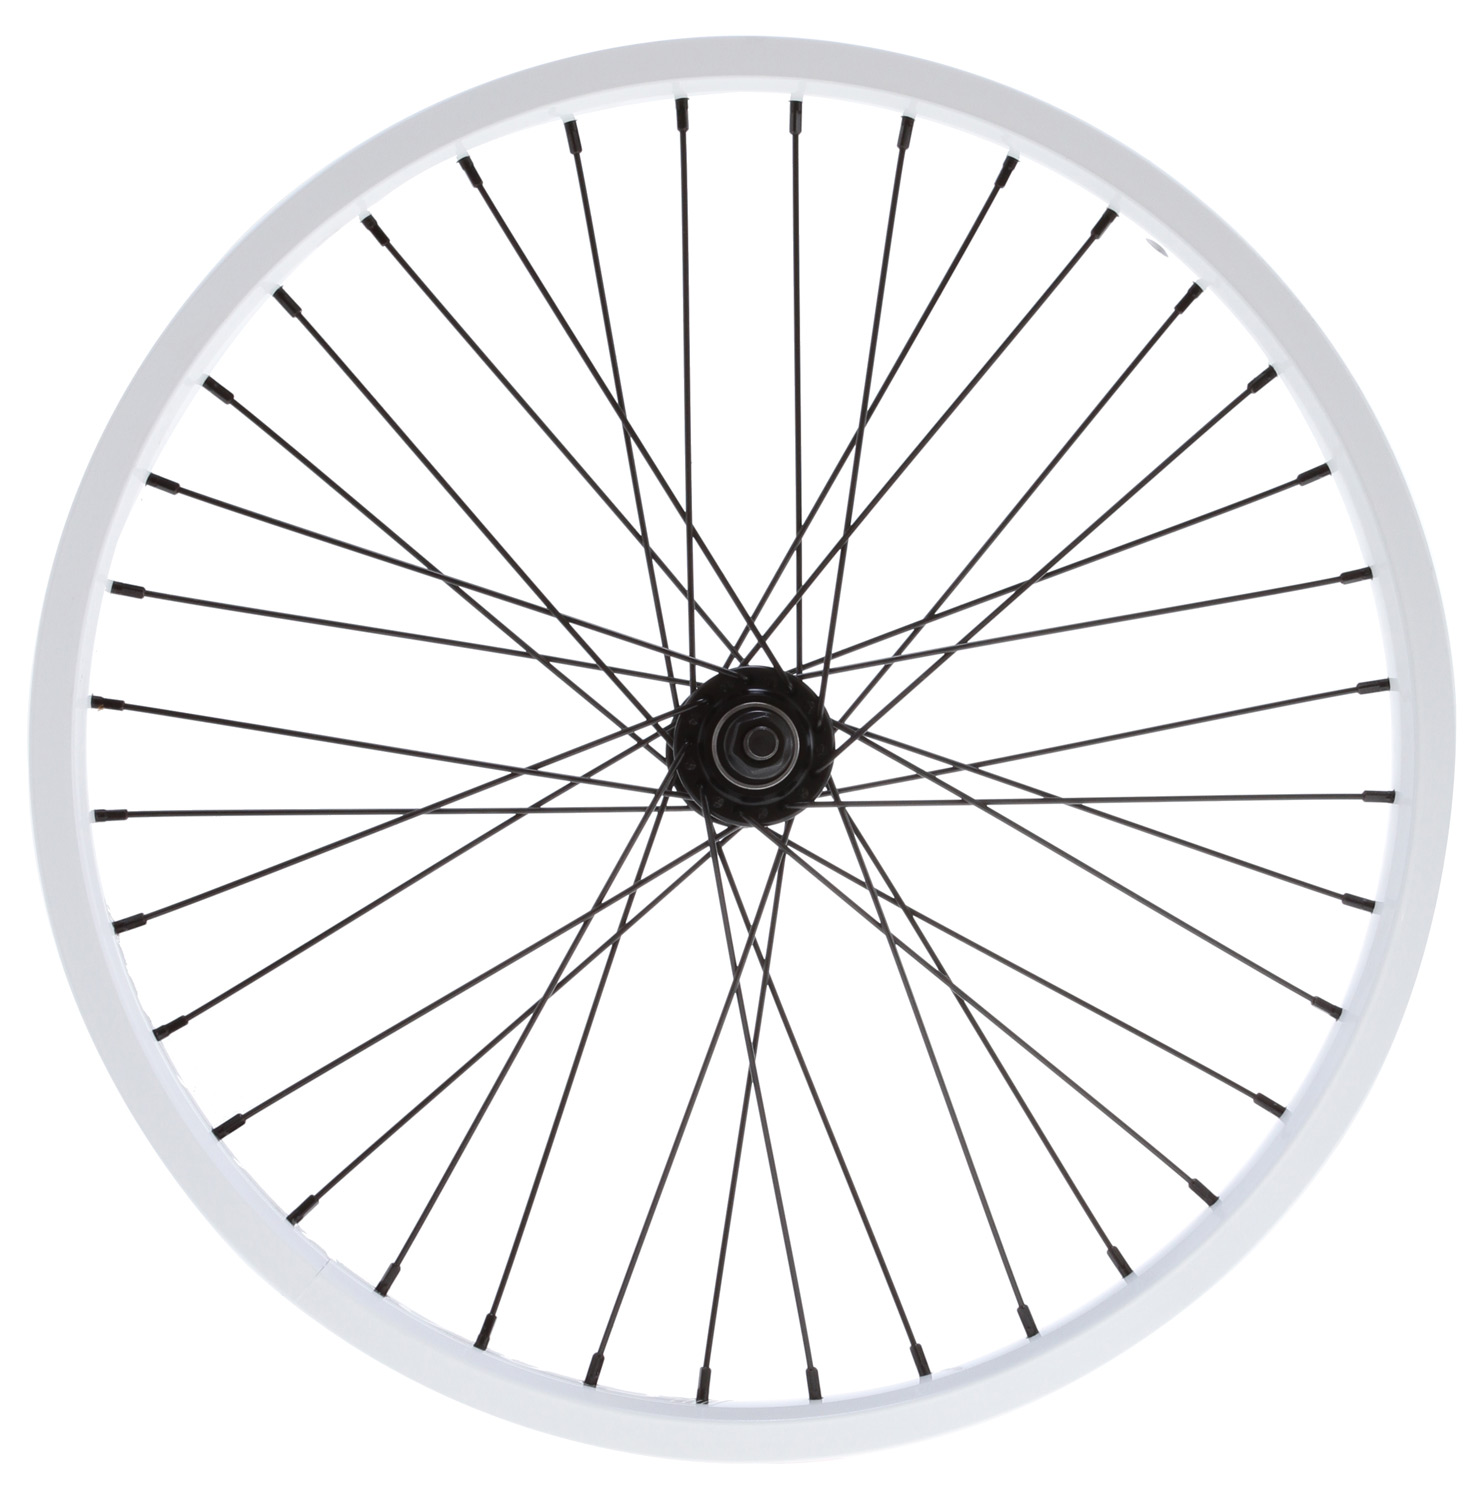 "BMX The Nitrous Double shot is a great, strong front wheel at a price you will love.Key Features of the Nitrous Double Shot Front 3/8 36H BMX Wheel 3/8"": Low-profile sealed bearing front hub 3/8"" chromoly axle 14g spokes 36-hole, double-walled alloy rim Colors: Matte Black, Matte Red, Matte Blue, Matte Flatinum, Matte Purple, Matte Hot Blue or Matte Gold Weight: 30 ounces Hub Flange Diameter: 44.5mm Rim E.R.D: 391 Spoke Length: 187mm - $58.95"